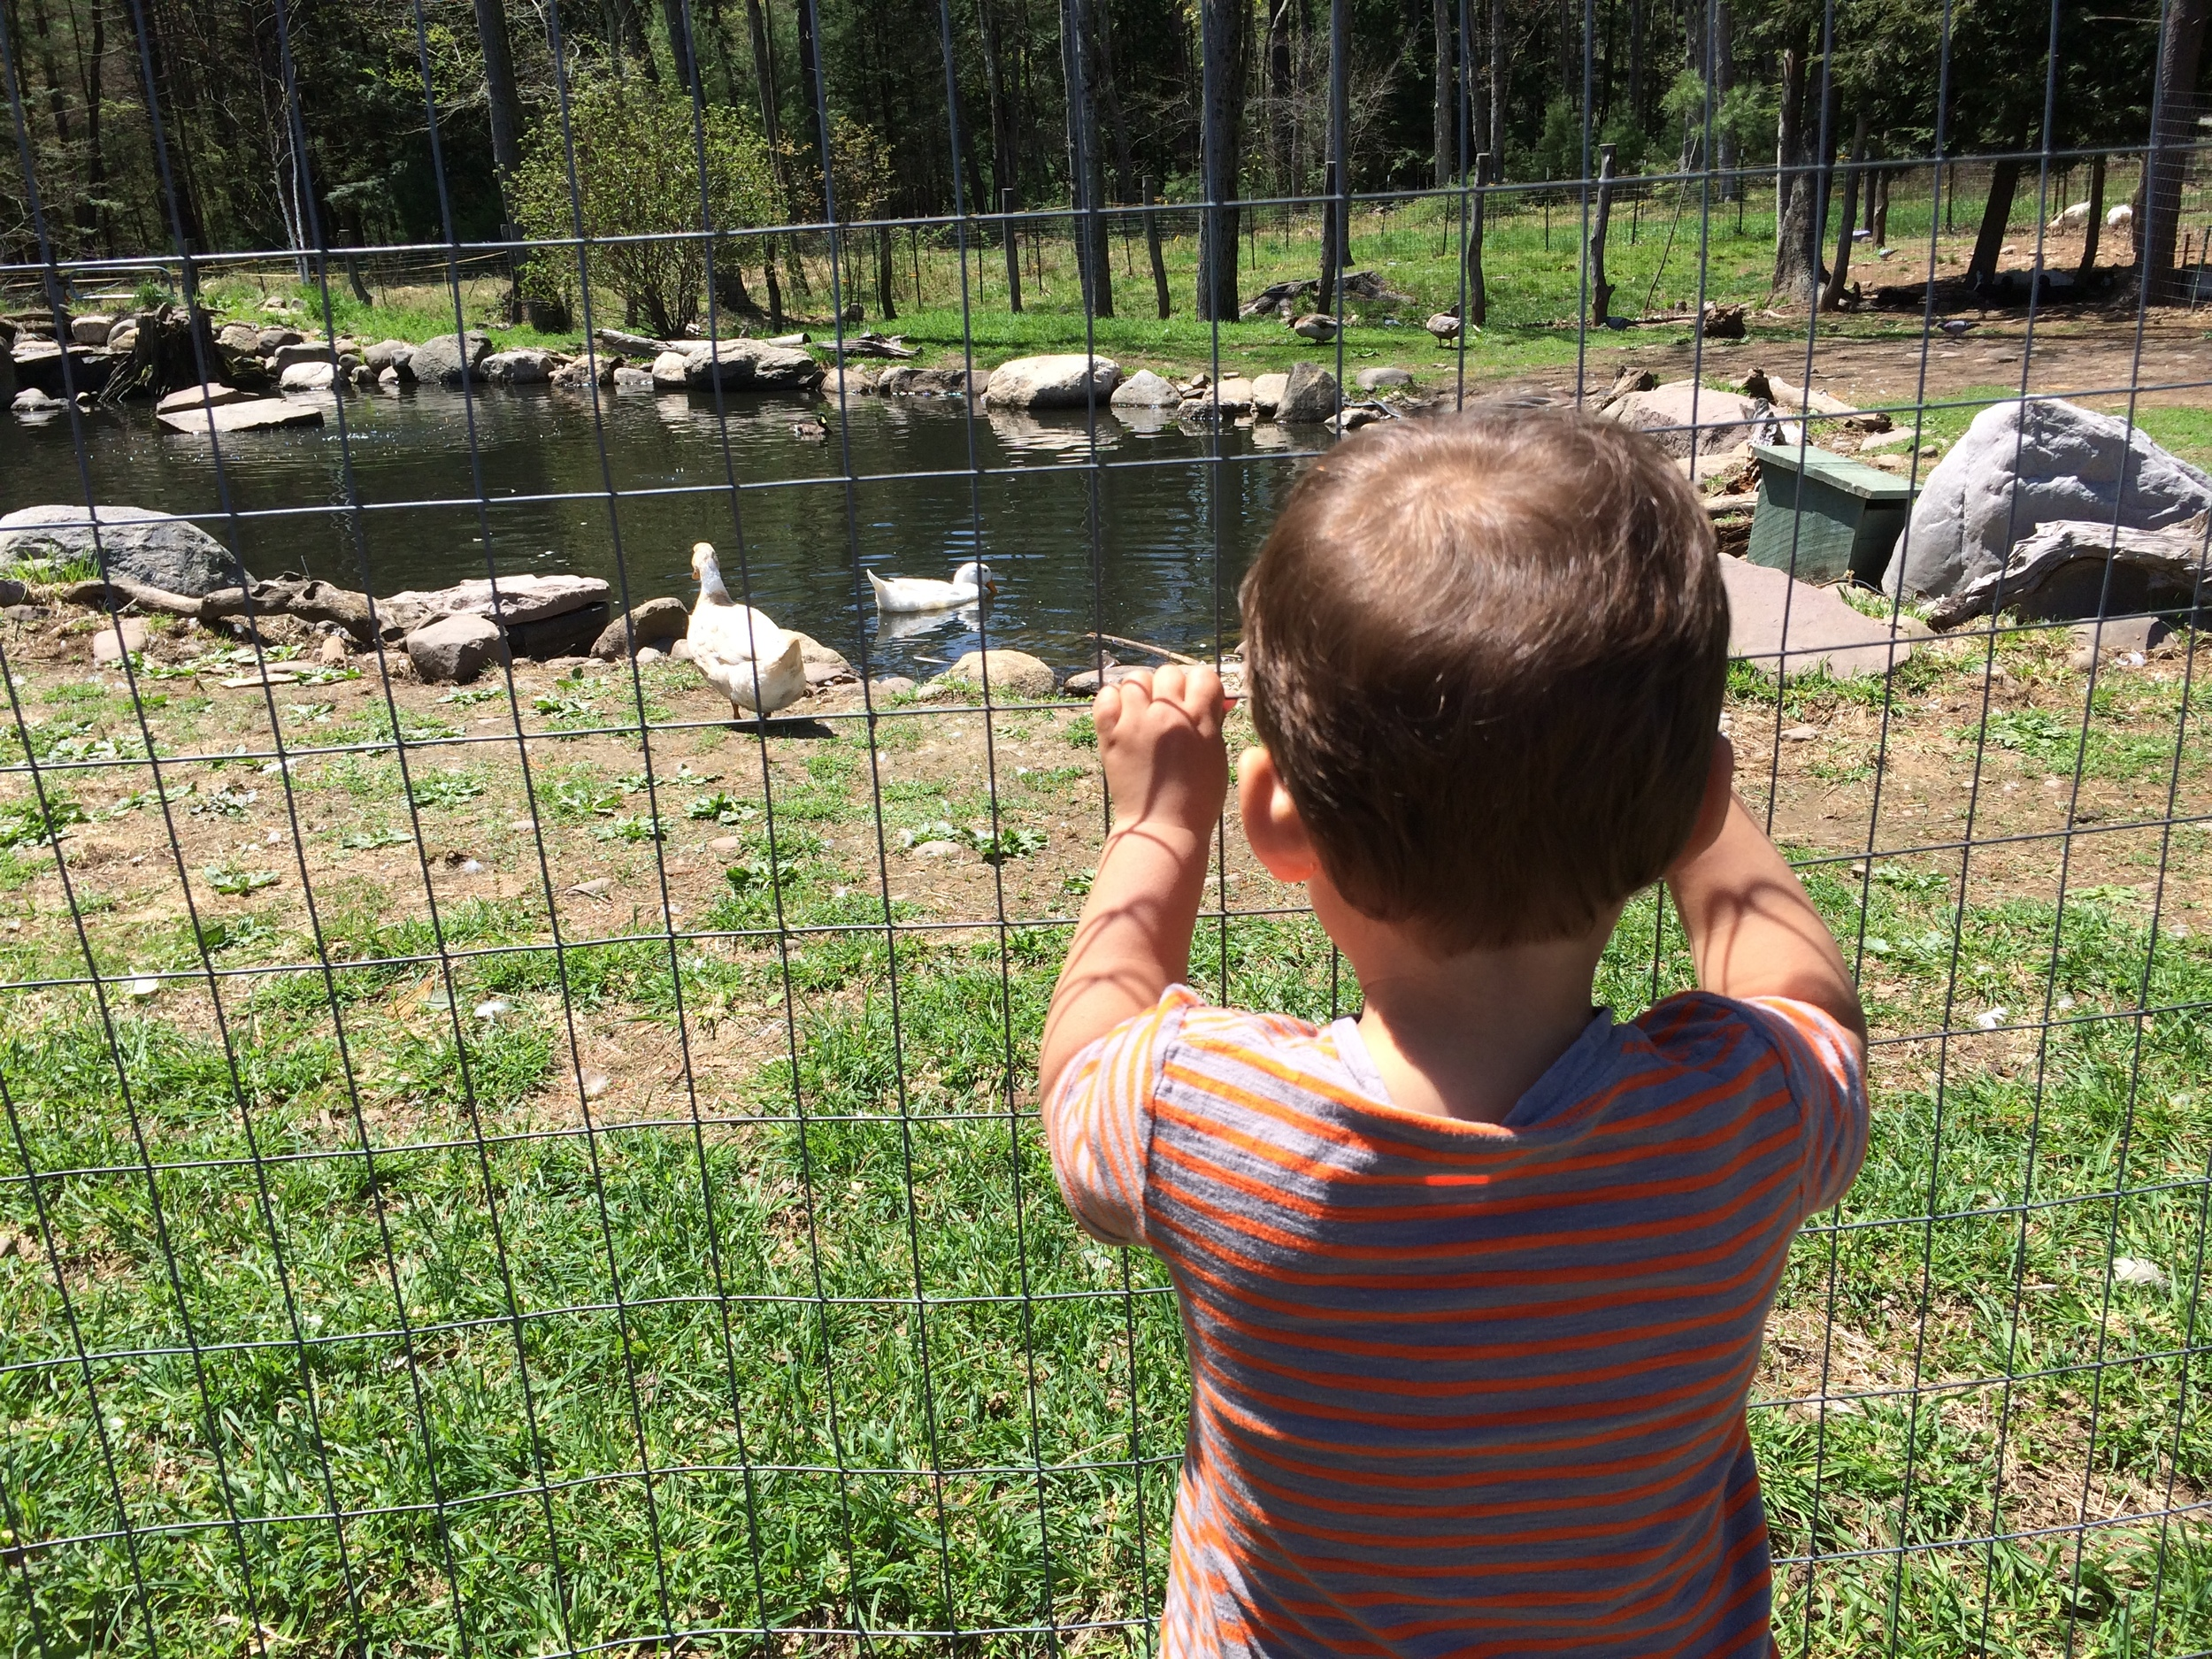 Visiting Quincy, the duck, at WFAS for Milo's 2nd birthday. And it is here that we learned that ducks do NOT like people...